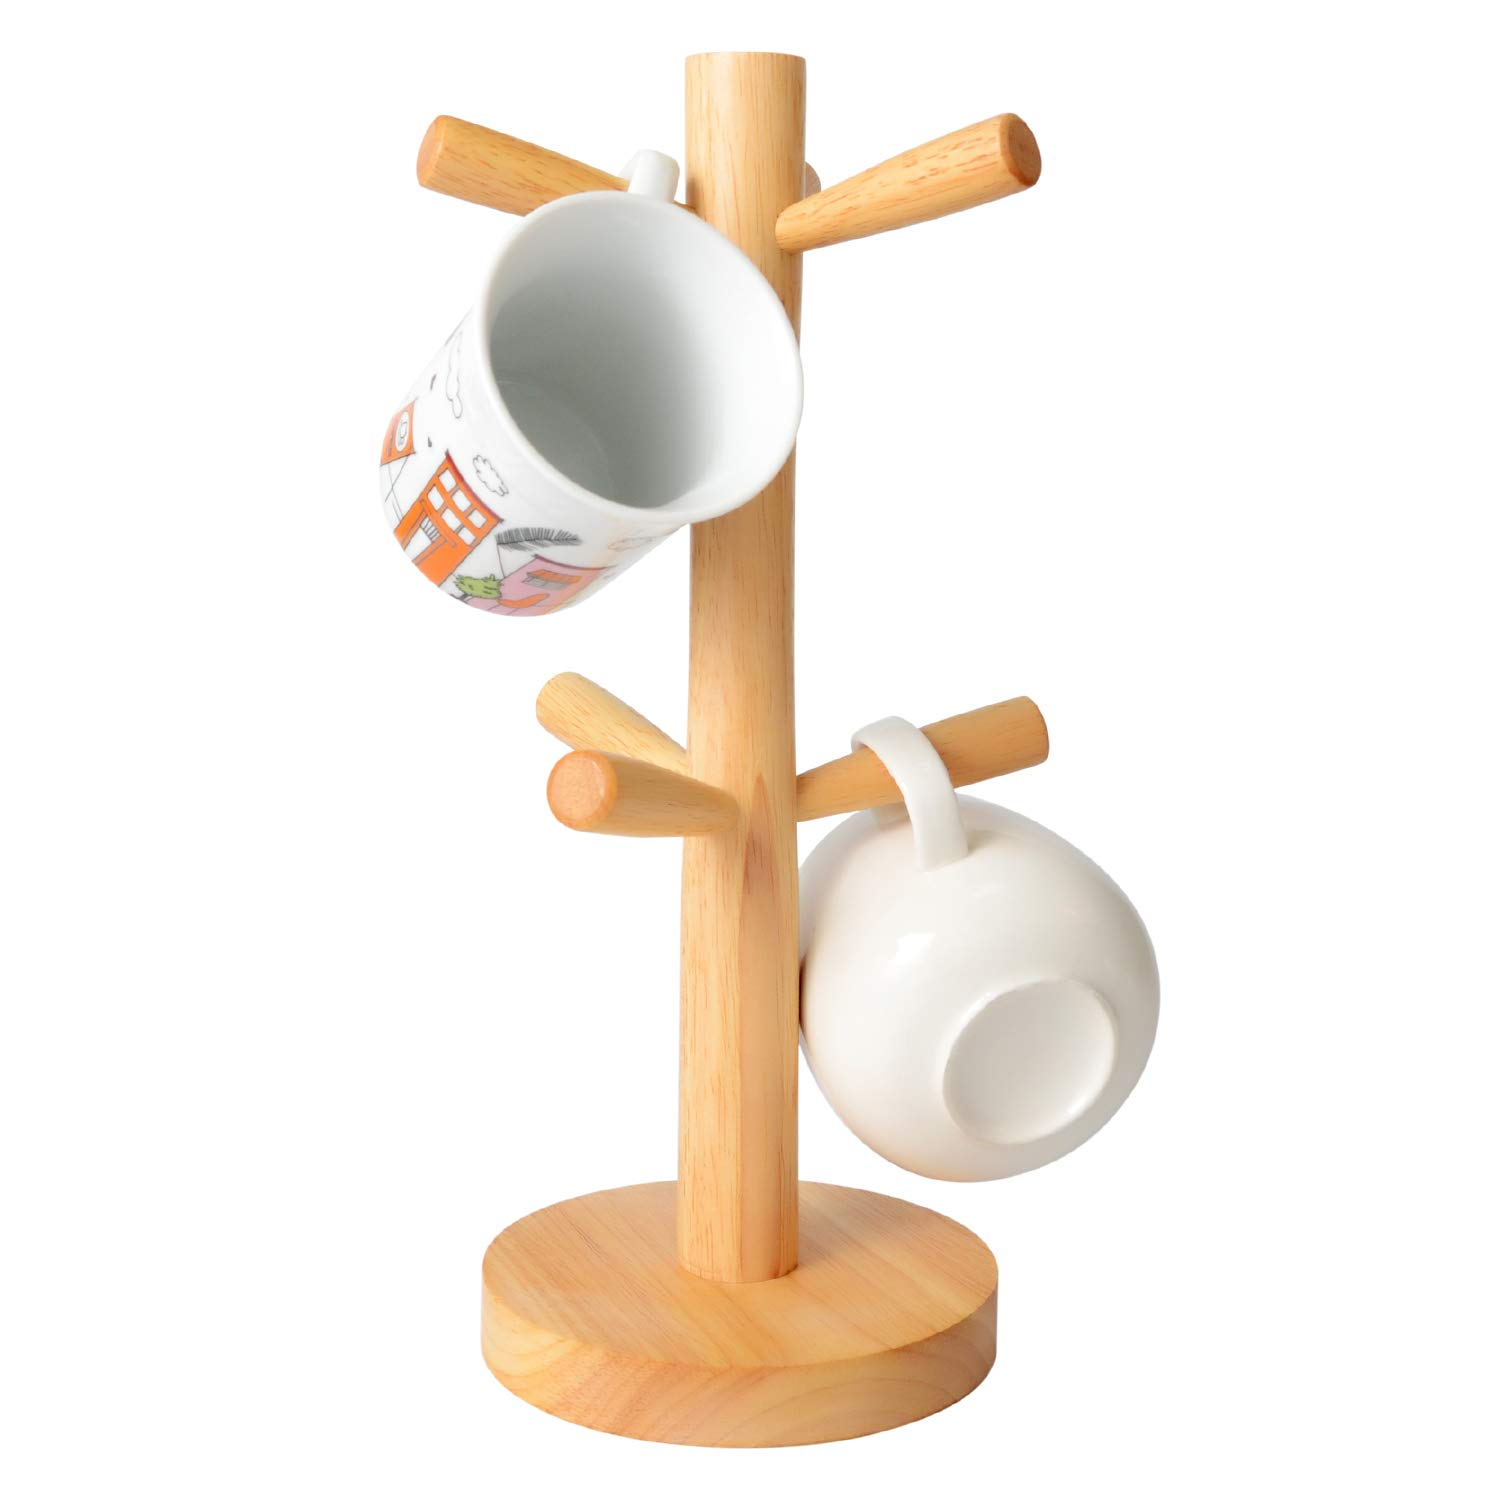 MEYUEWAL Wood Mug Tree,Mug Holder with 6 Storage Hooks,Removable Wood Mug Stand, for Kitchen Cups Organizer,Coffee Mug Drying,Creative Jewelry Holder Storage Racks